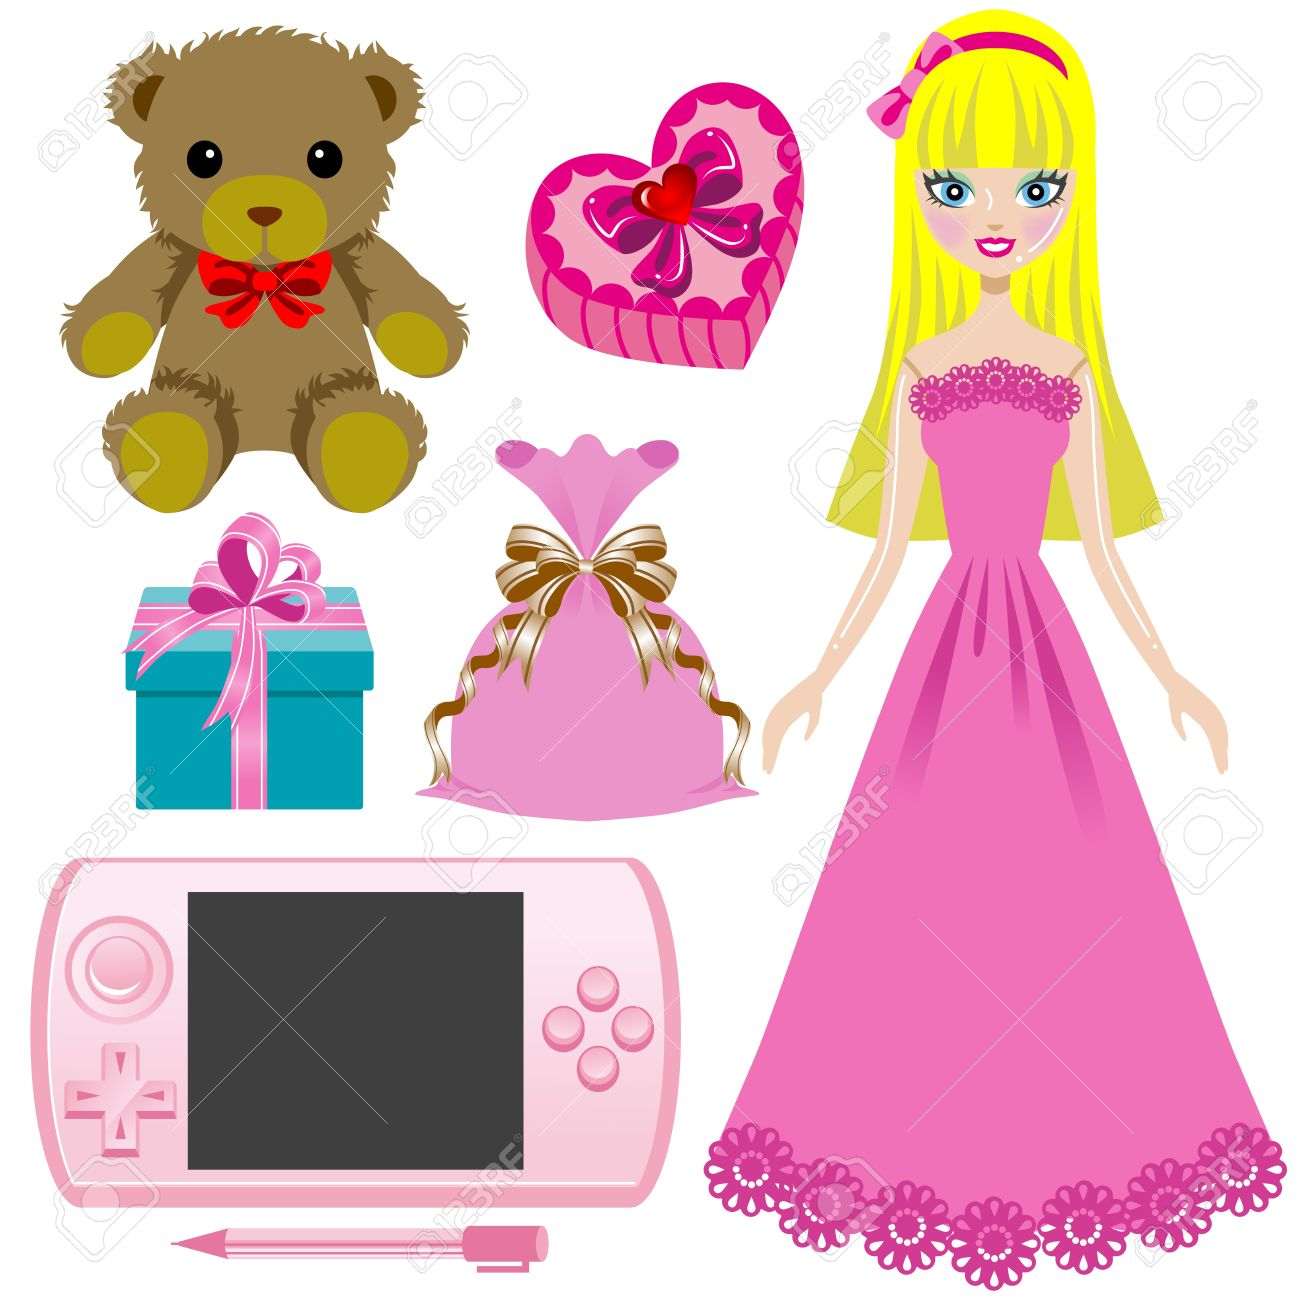 Alluring Toy Girls Toy Stock Illustration Toys Girls Age 5 Toys Girls At Walmart Girls Royalty Free baby Toys For Girls